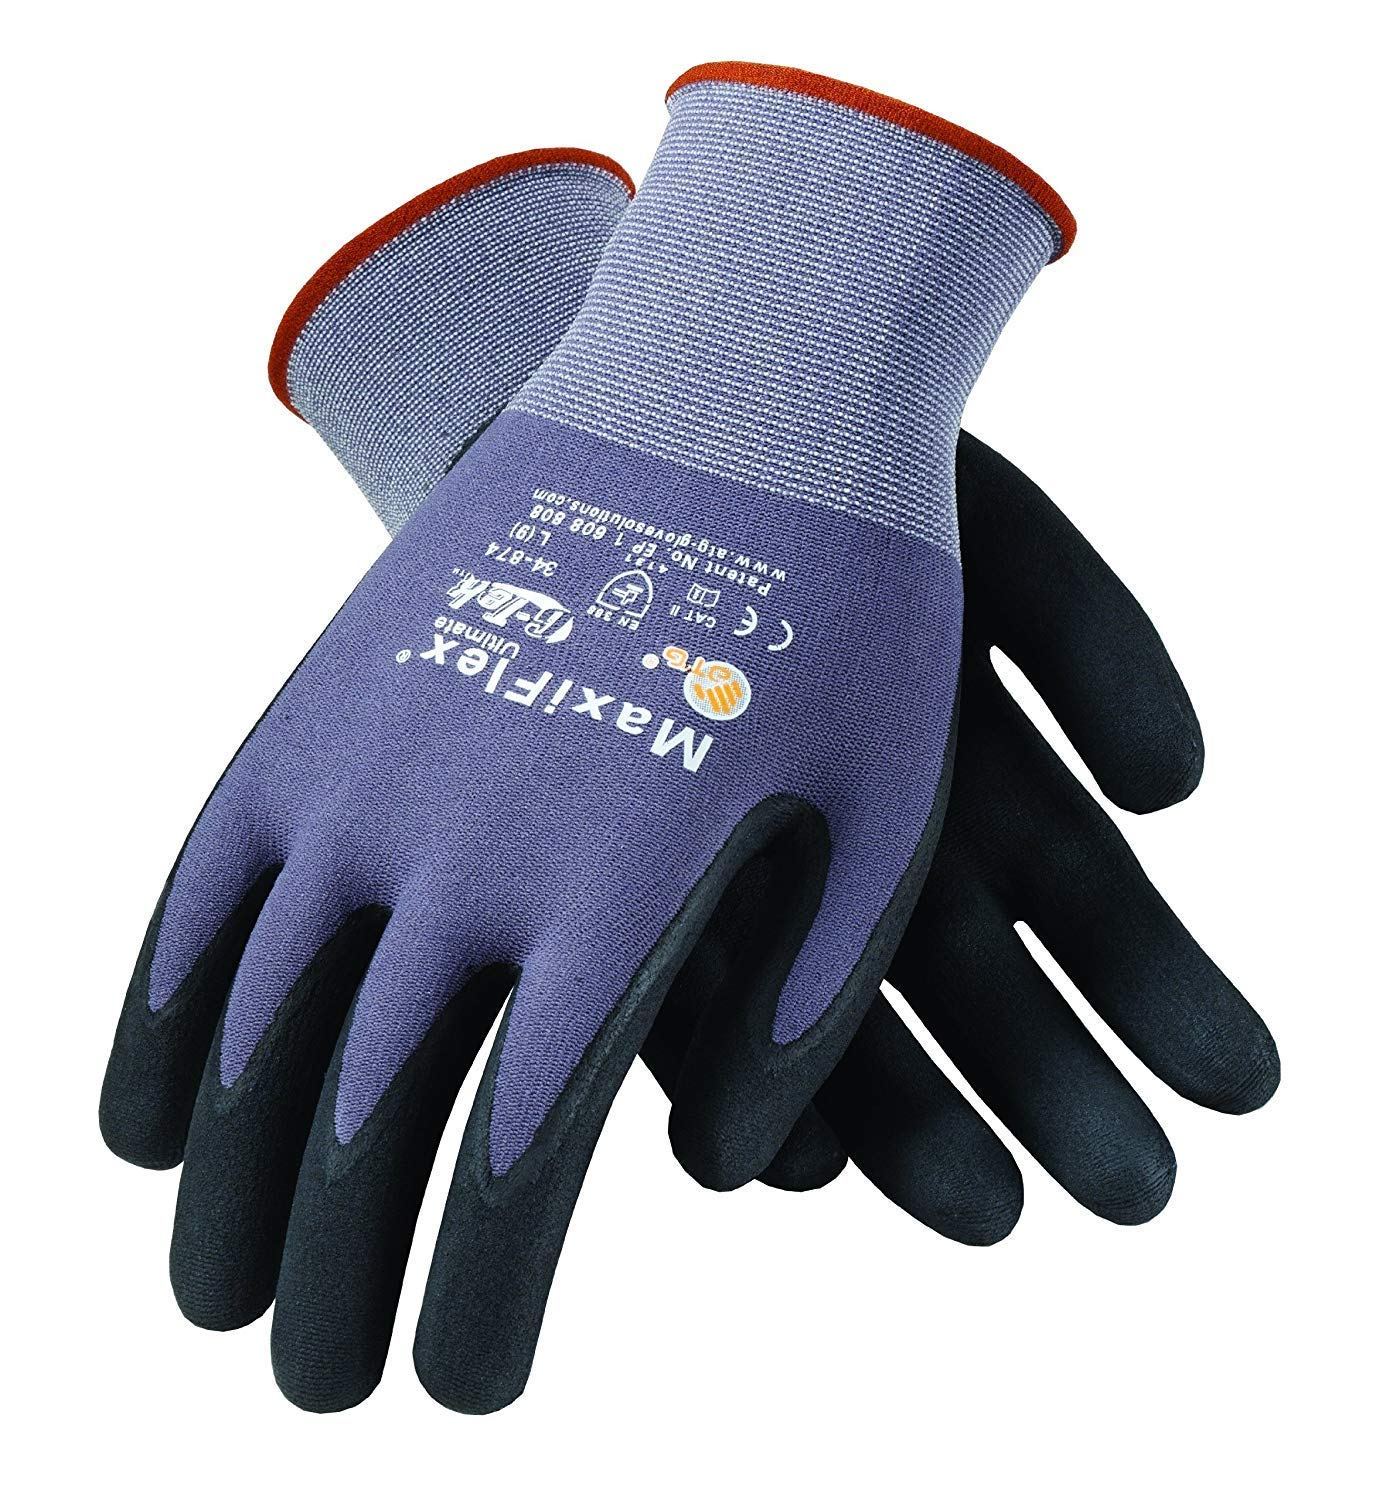 MaxiFlex 34-874 Gloves Nitrile Micro-Foam Grip Palm & Fingers(Size-L/24 Pairs) by ATG (Image #1)